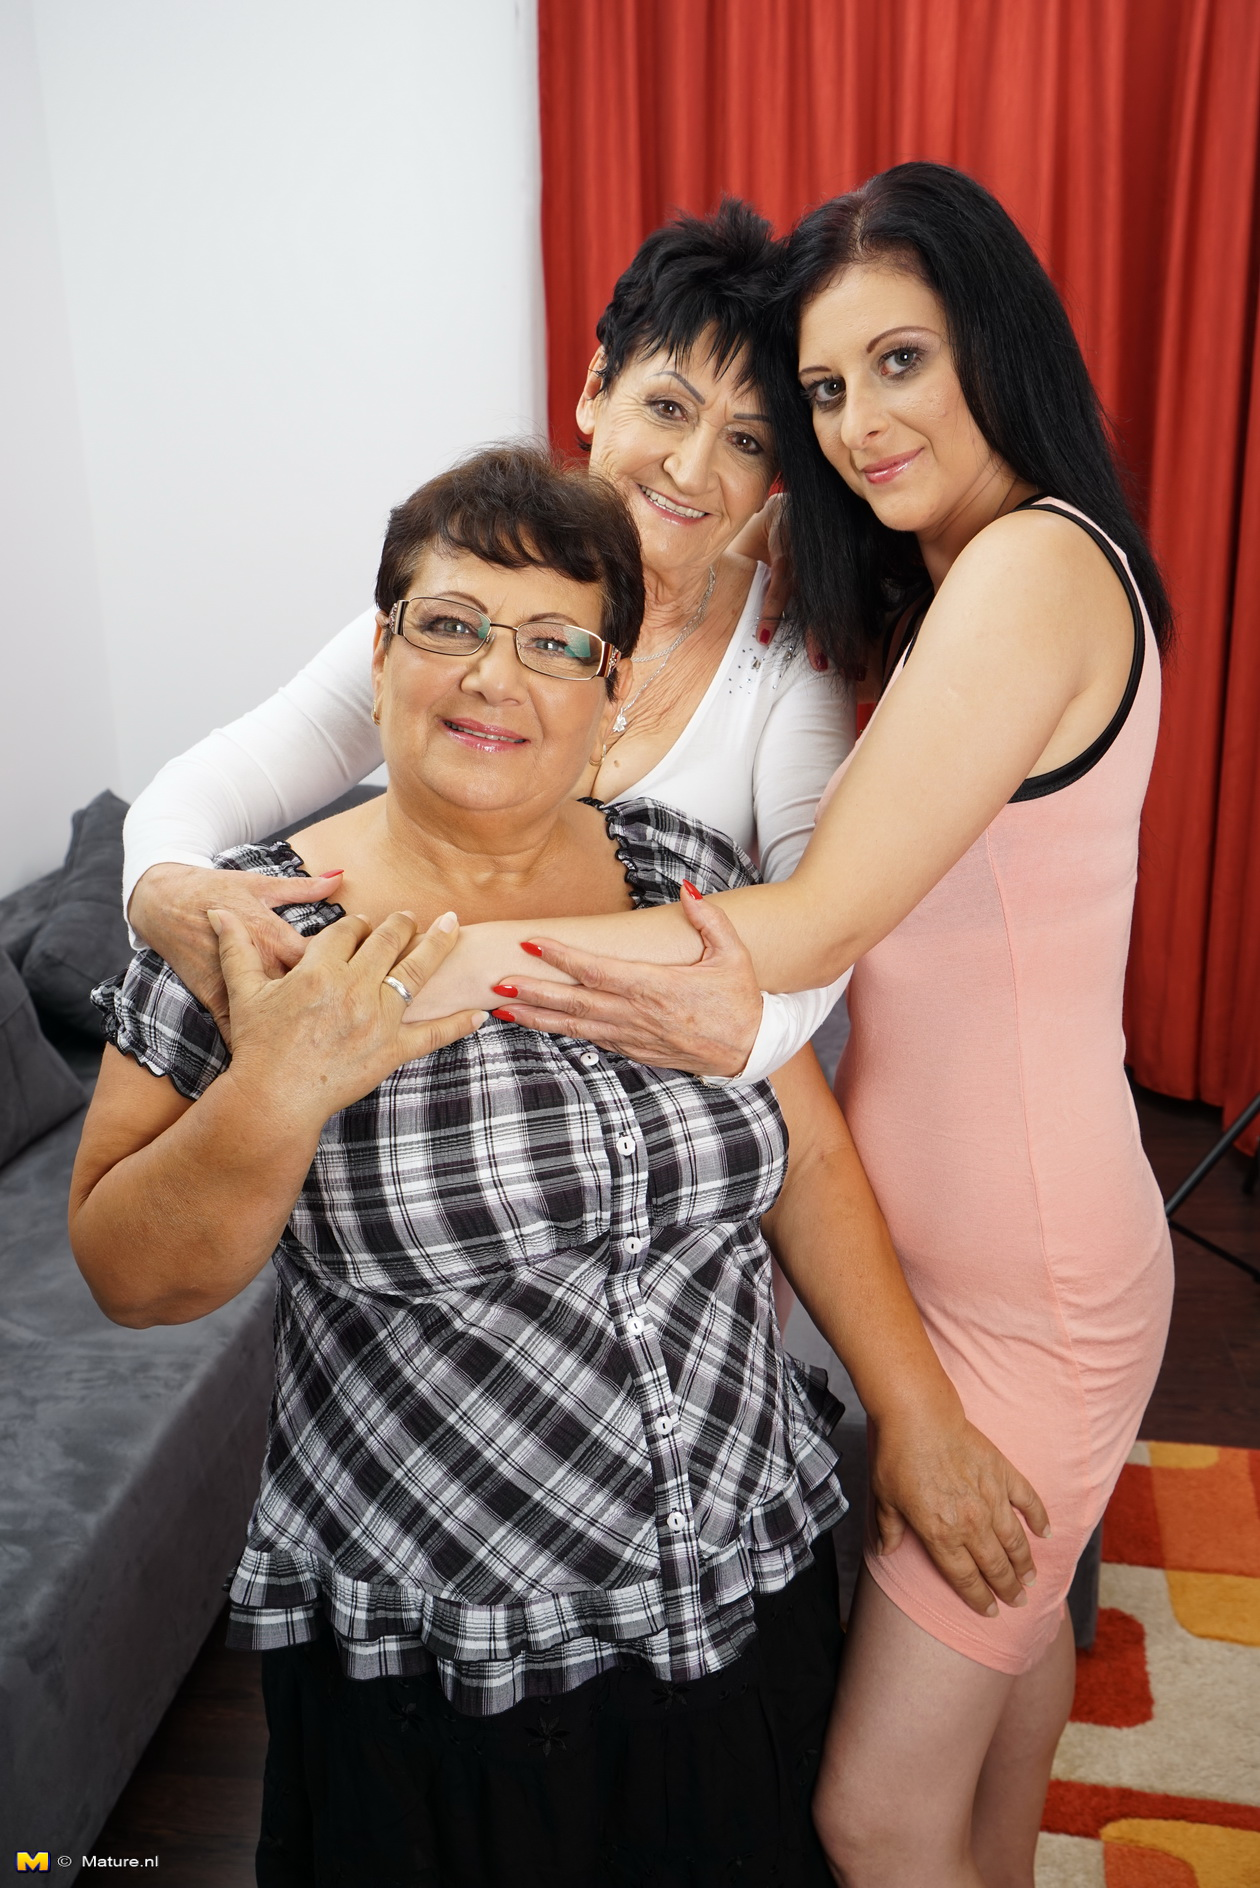 Three kinky housewives having joy together